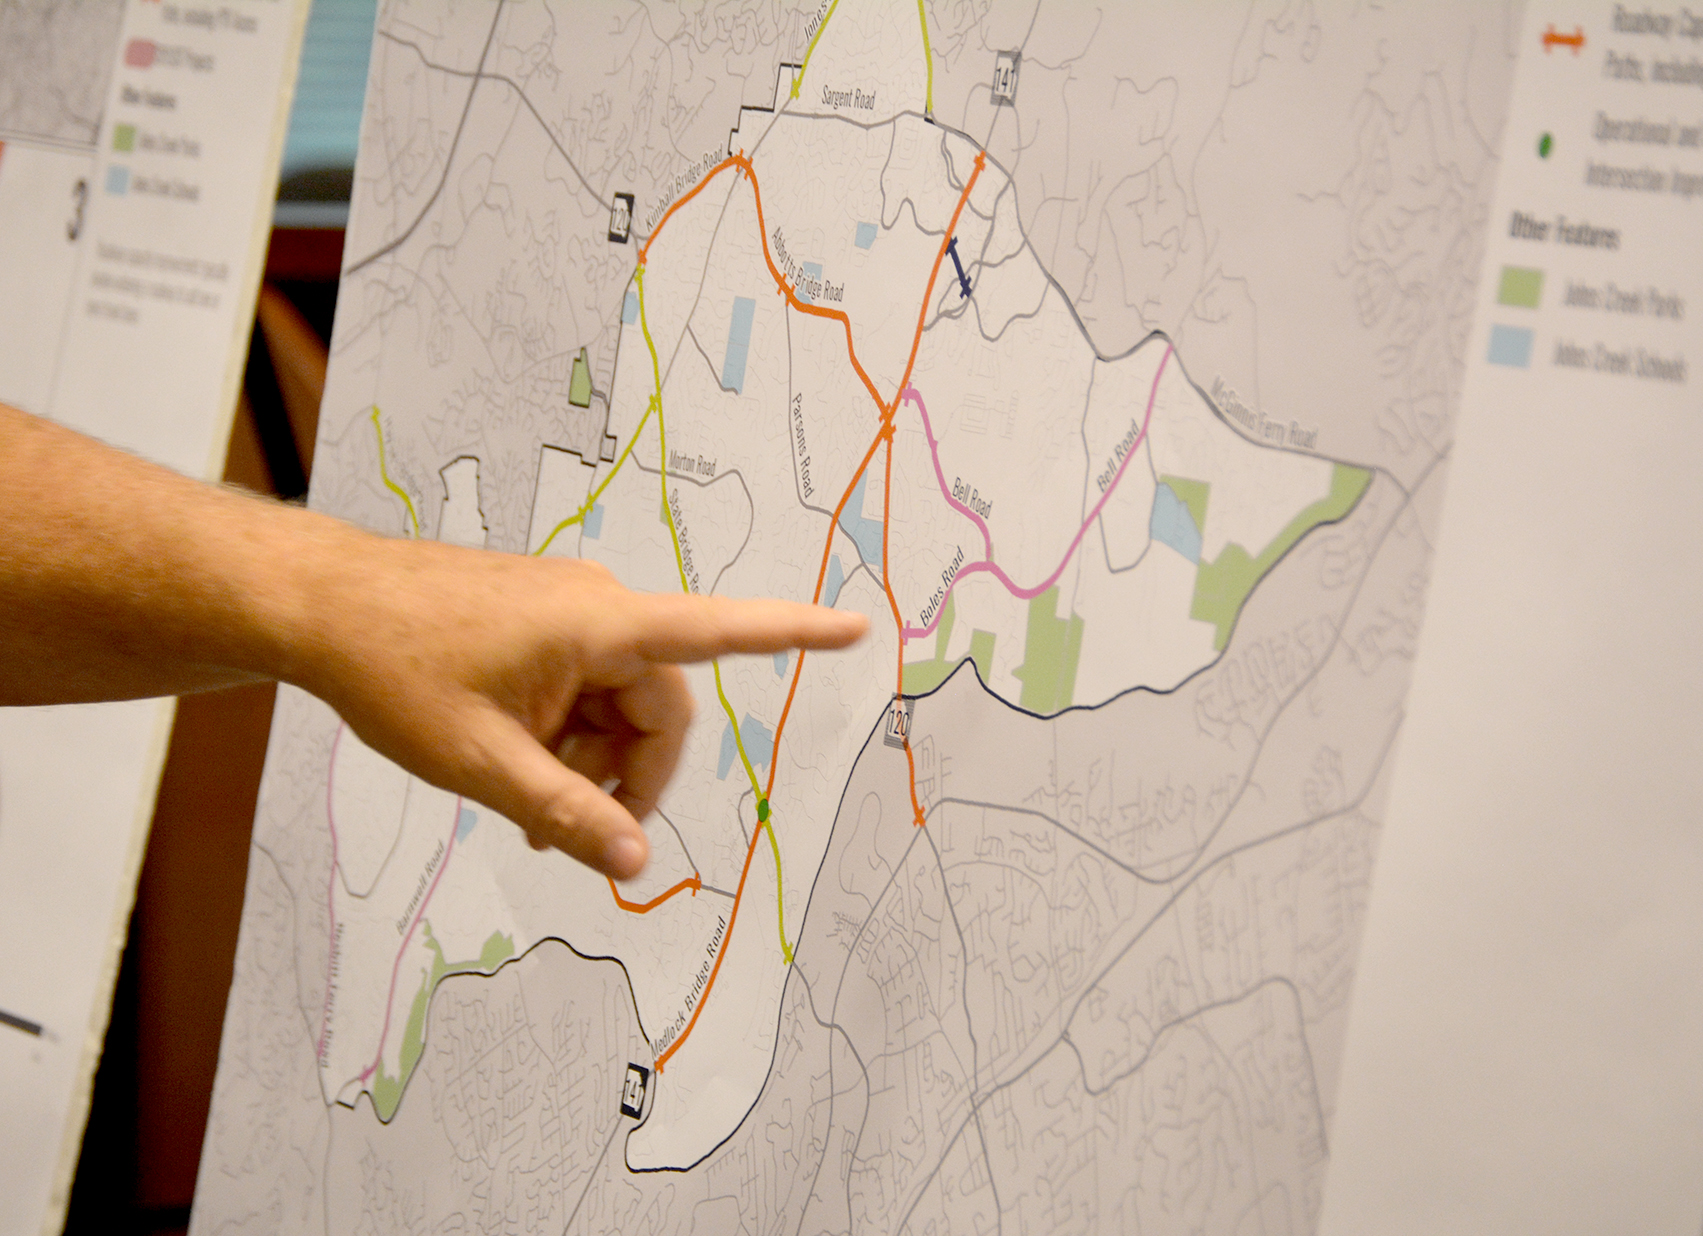 City of Johns Creek seeks input on future plans of the City